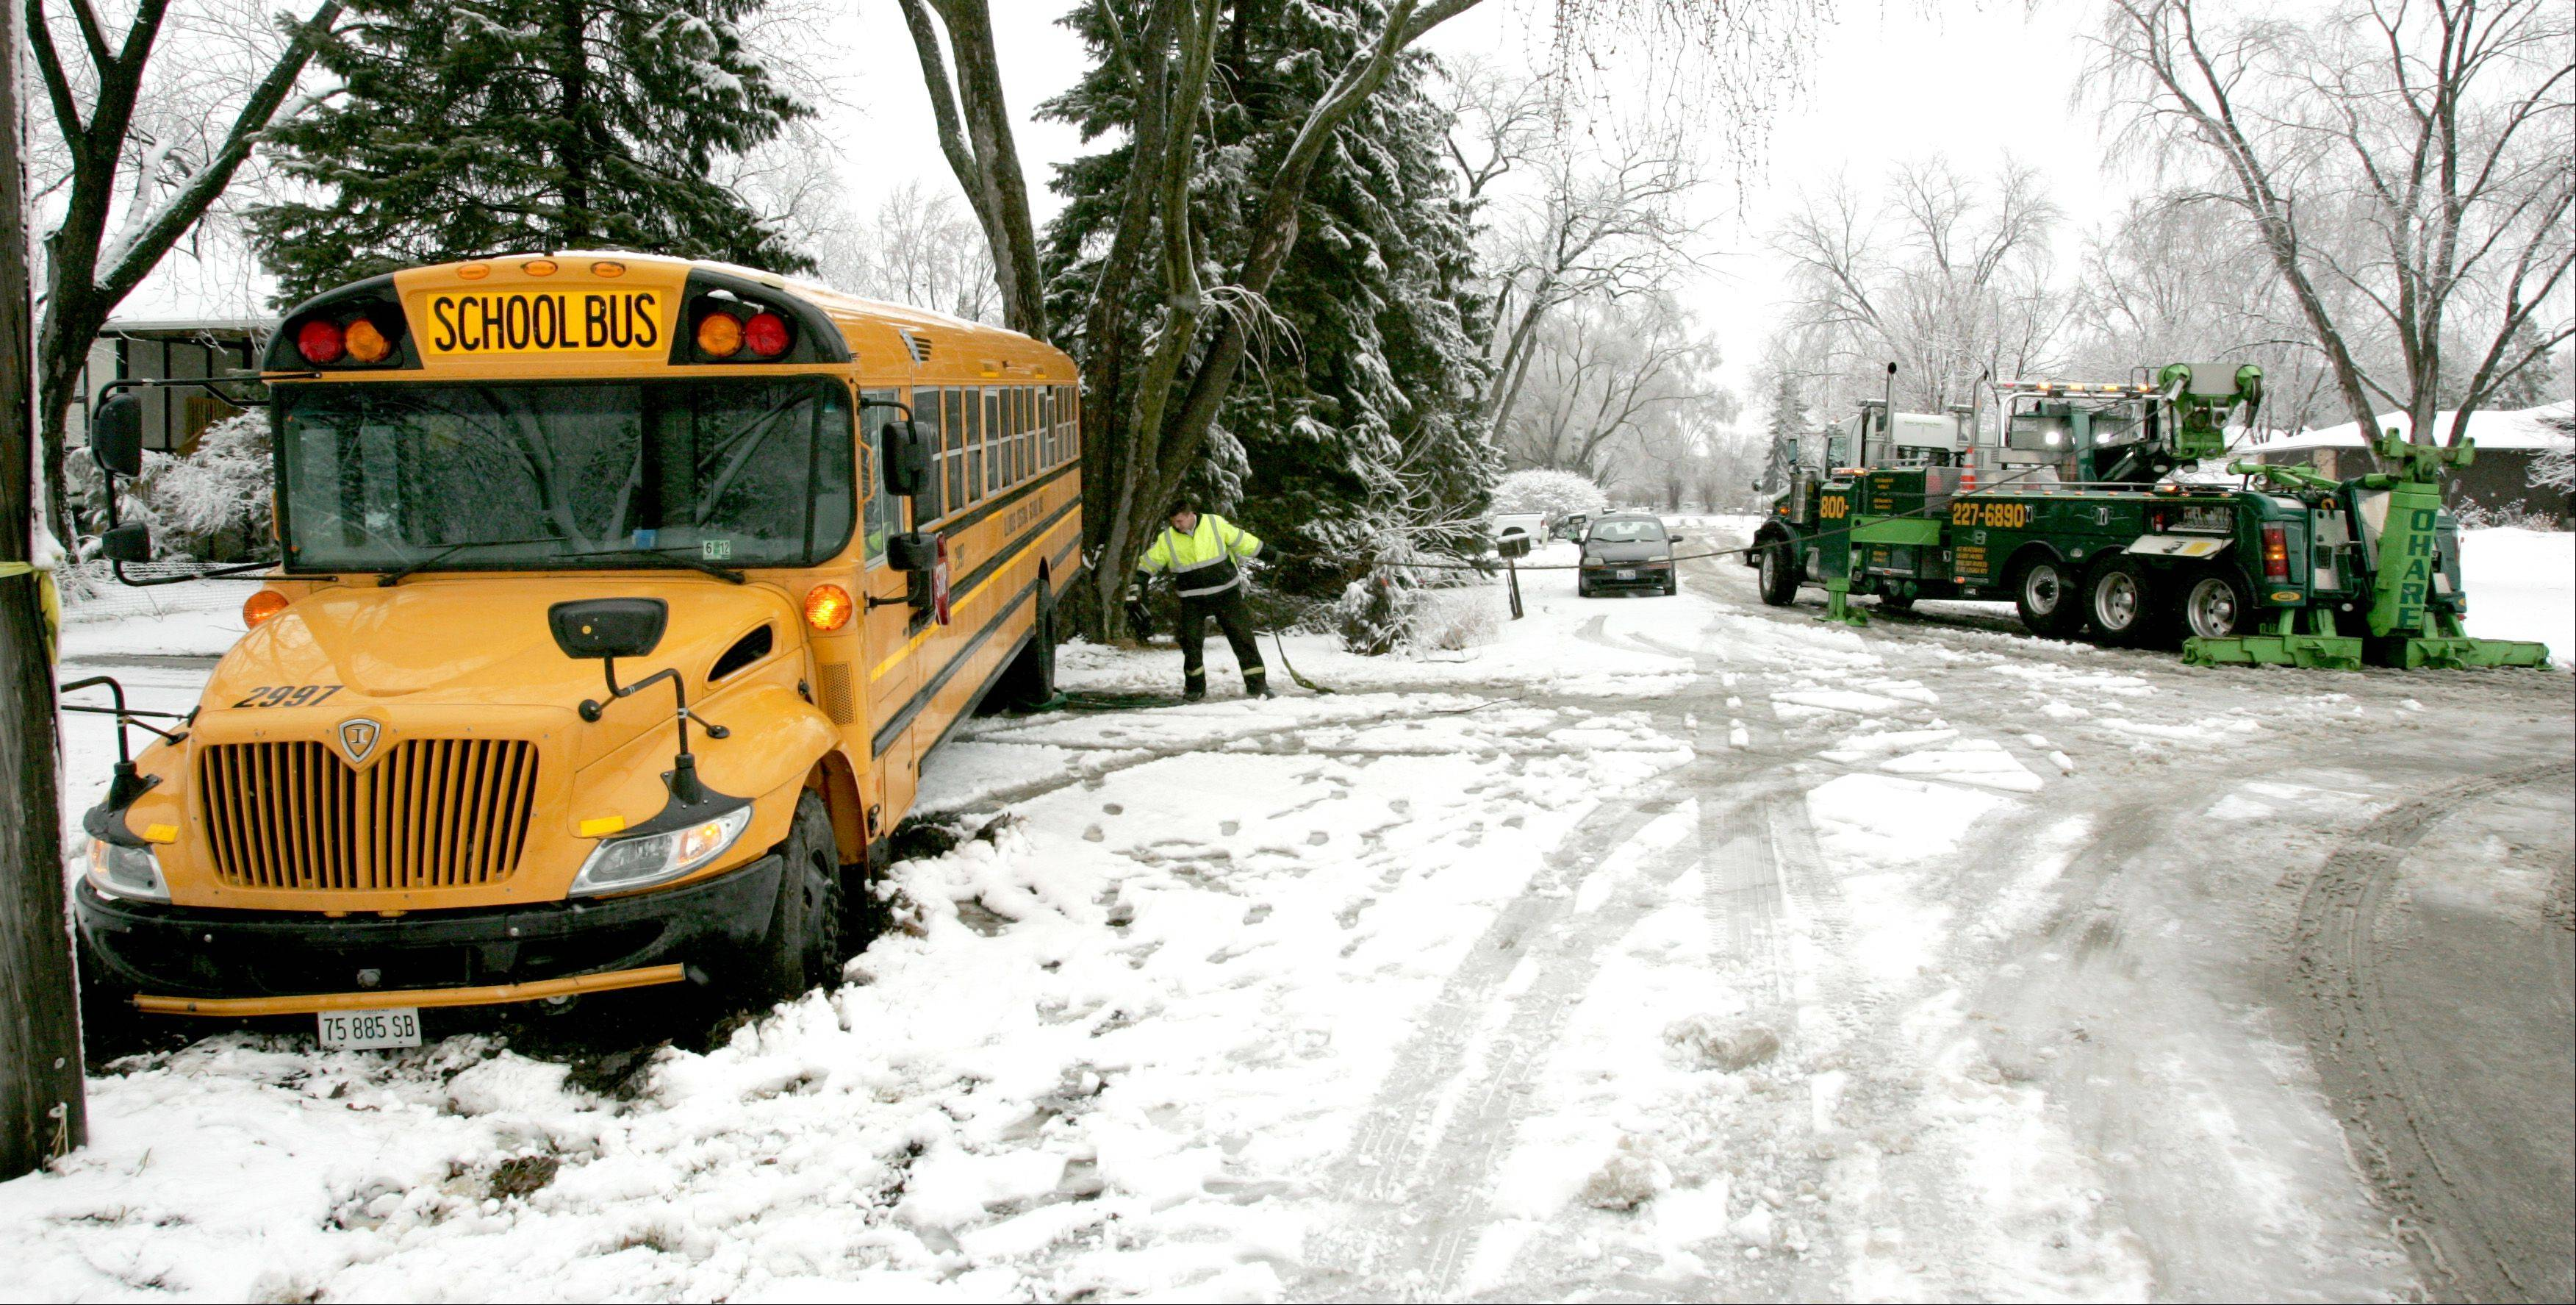 A school bus skidded on ice at the corner of Lacey and Dumoulin in Lisle. O'Hare Towing Services Matt Bartlett prepares to move the bus's front wheels out of the mud.